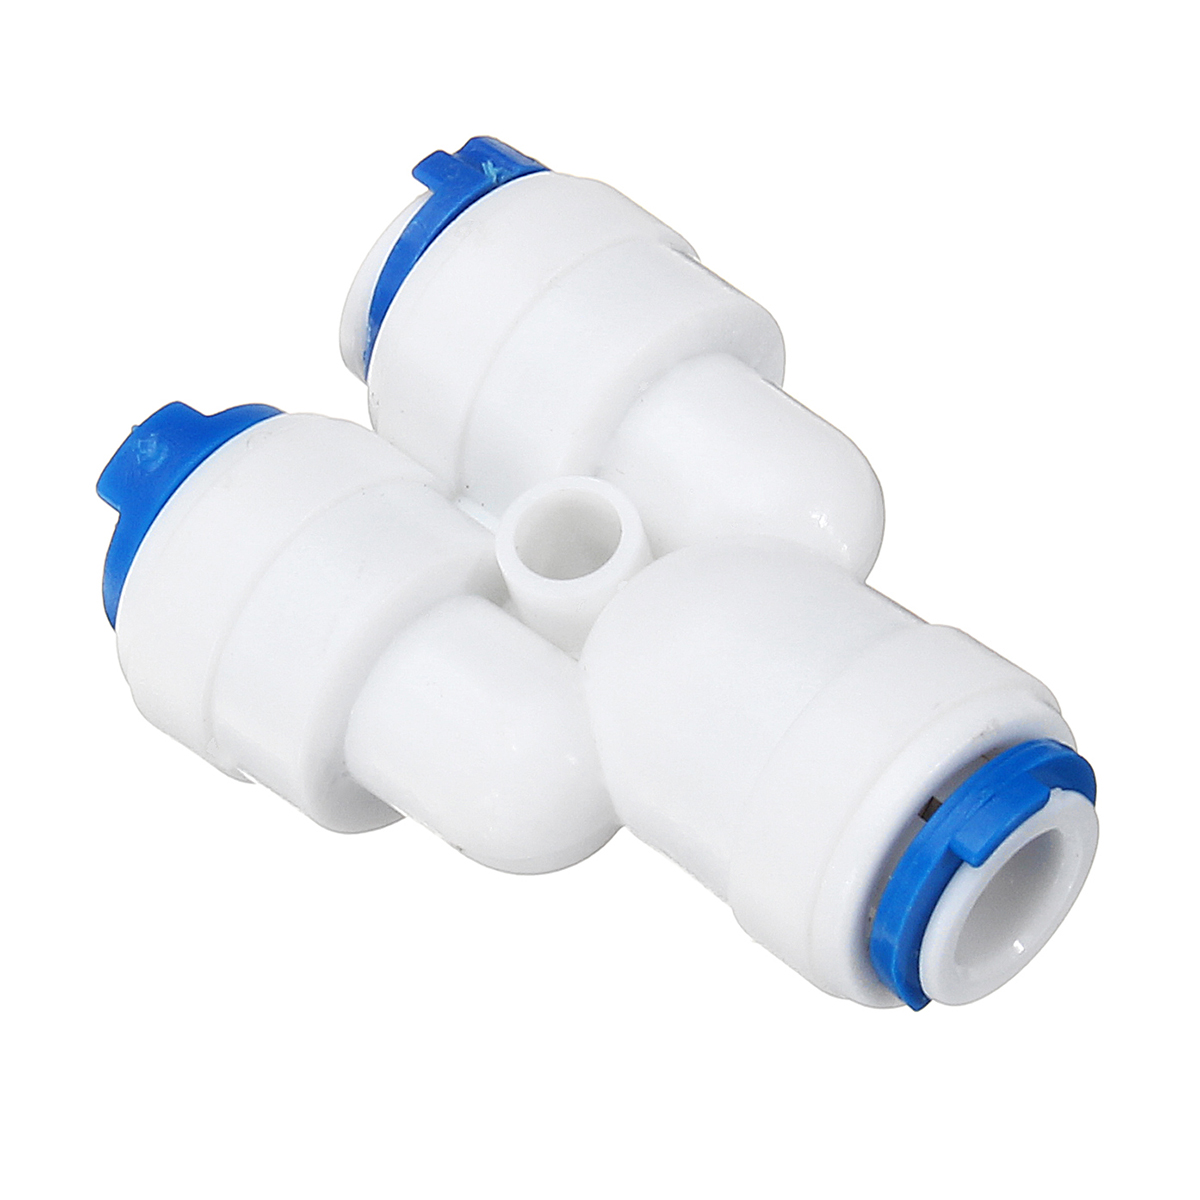 1/4 Inch RO Grade Y Type Water Tube Quick Connect Parts Fittings Connection Pipes for Water Filters